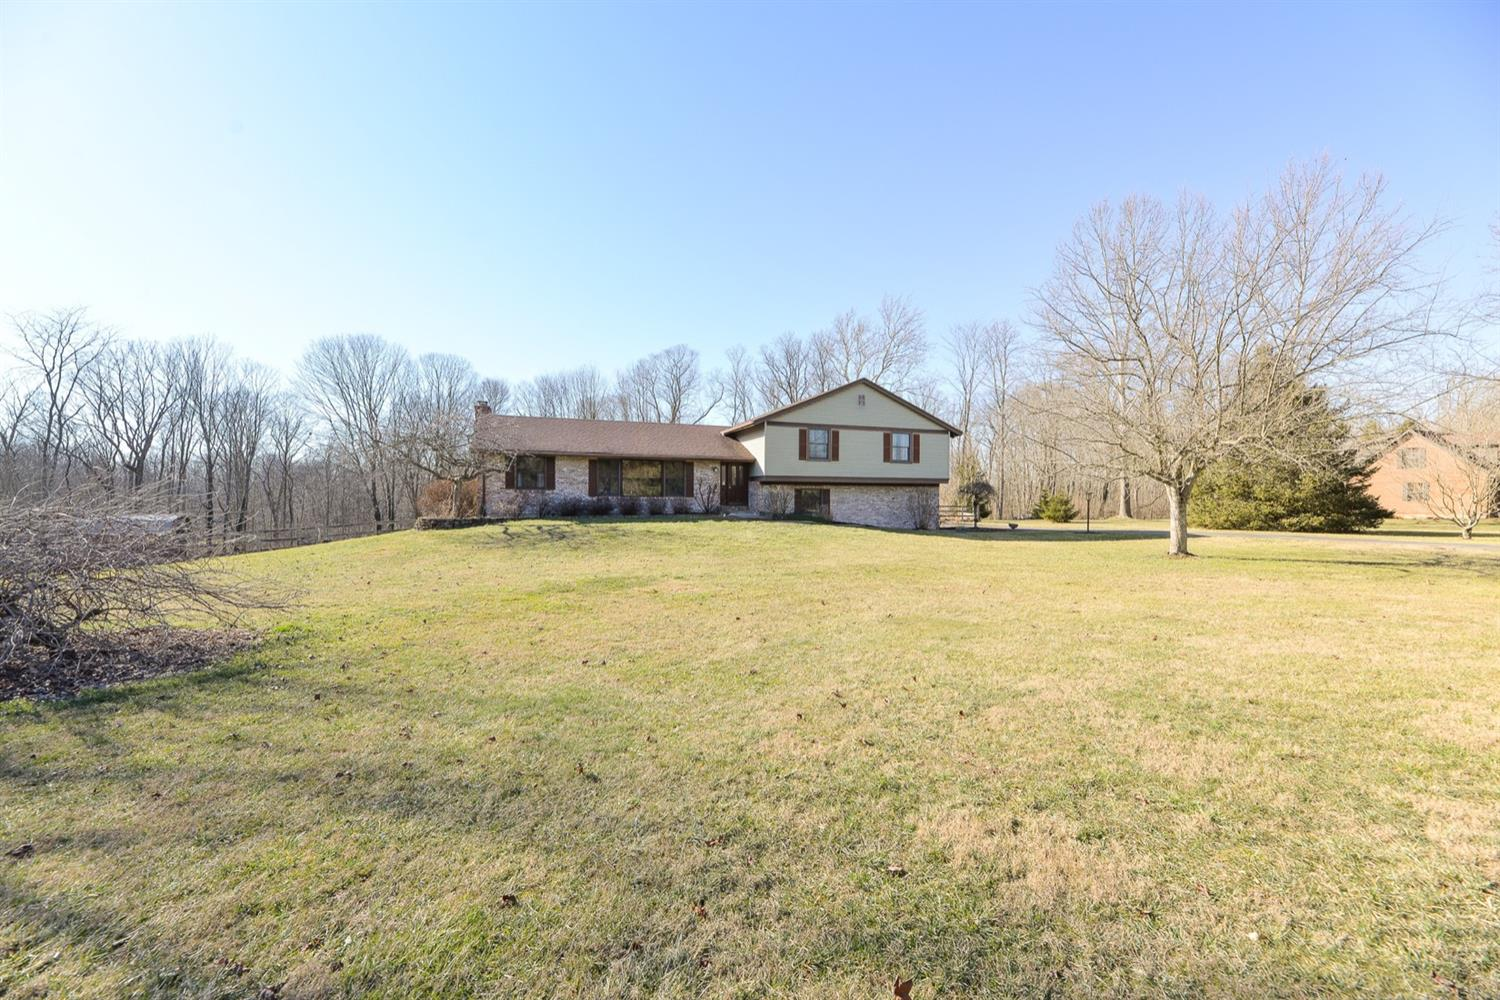 6218 Greenbud Dr Wayne Twp. (Clermont Co.), OH